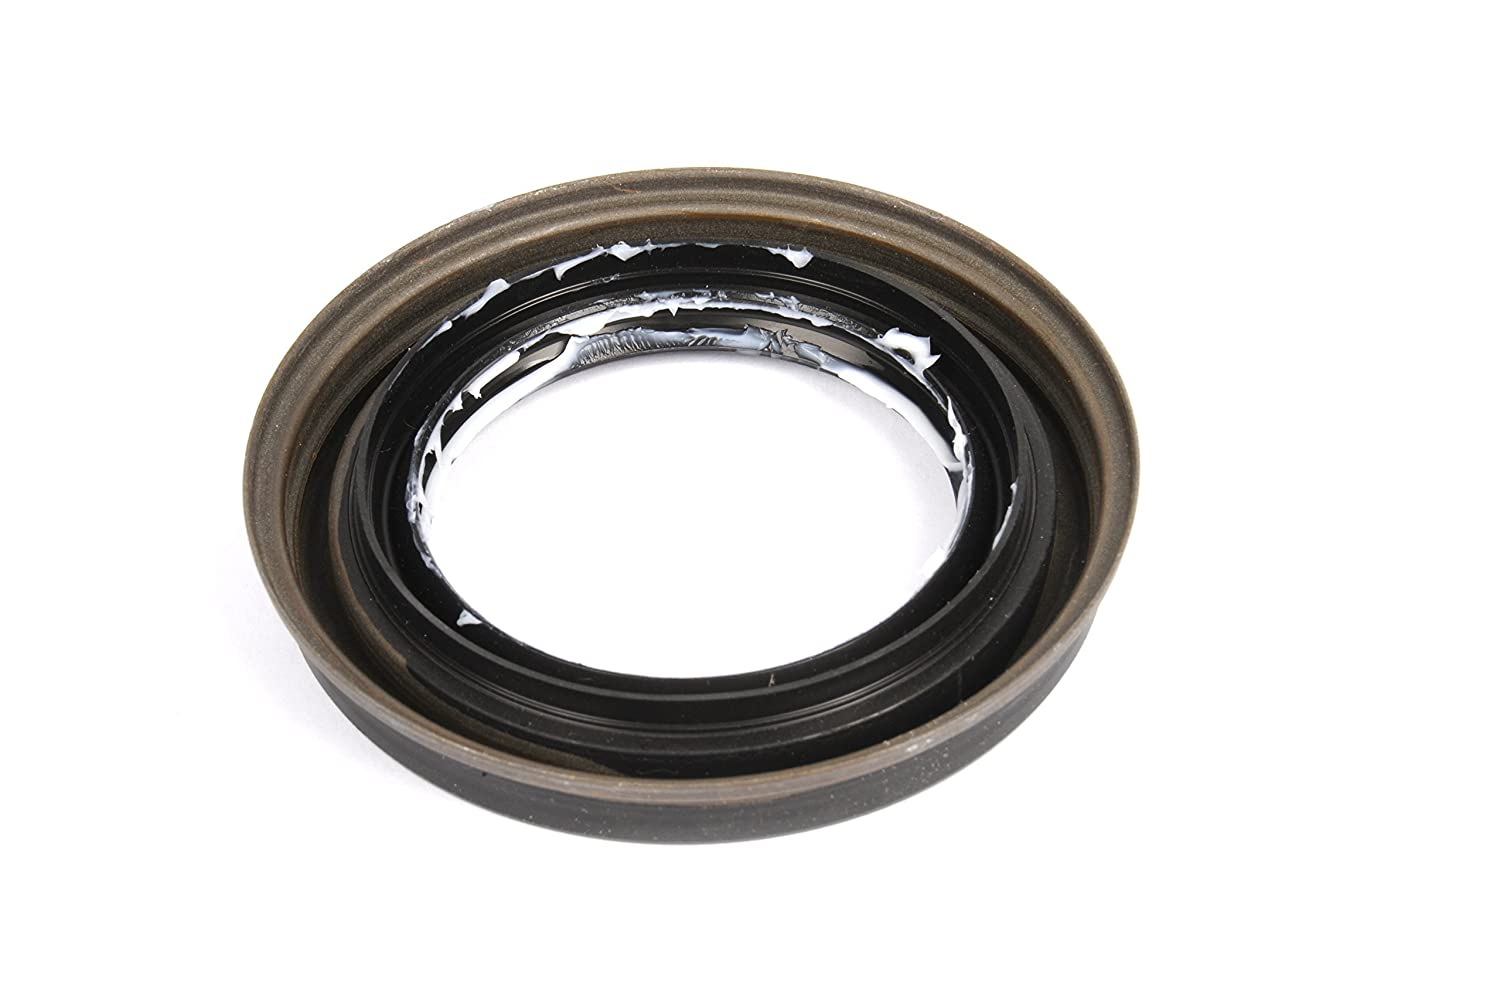 ACDelco 291-343 GM Original Equipment Rear Axle Shaft Seal acdelco 24237219 gm original equipment automatic transmission control valve body assembly